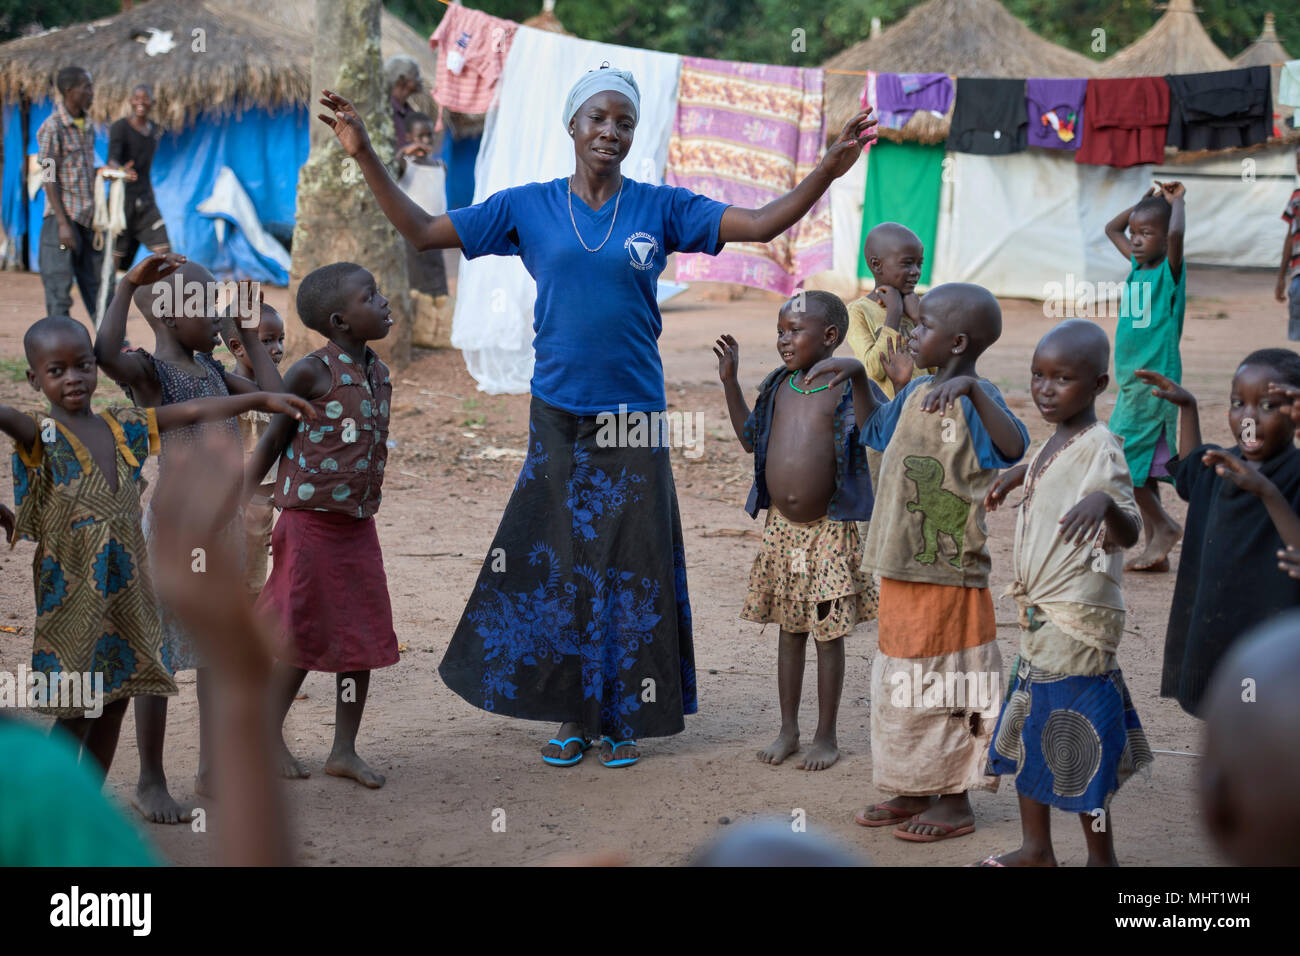 A YWCA educator plays games with children displaced by armed conflict in South Sudan. - Stock Image